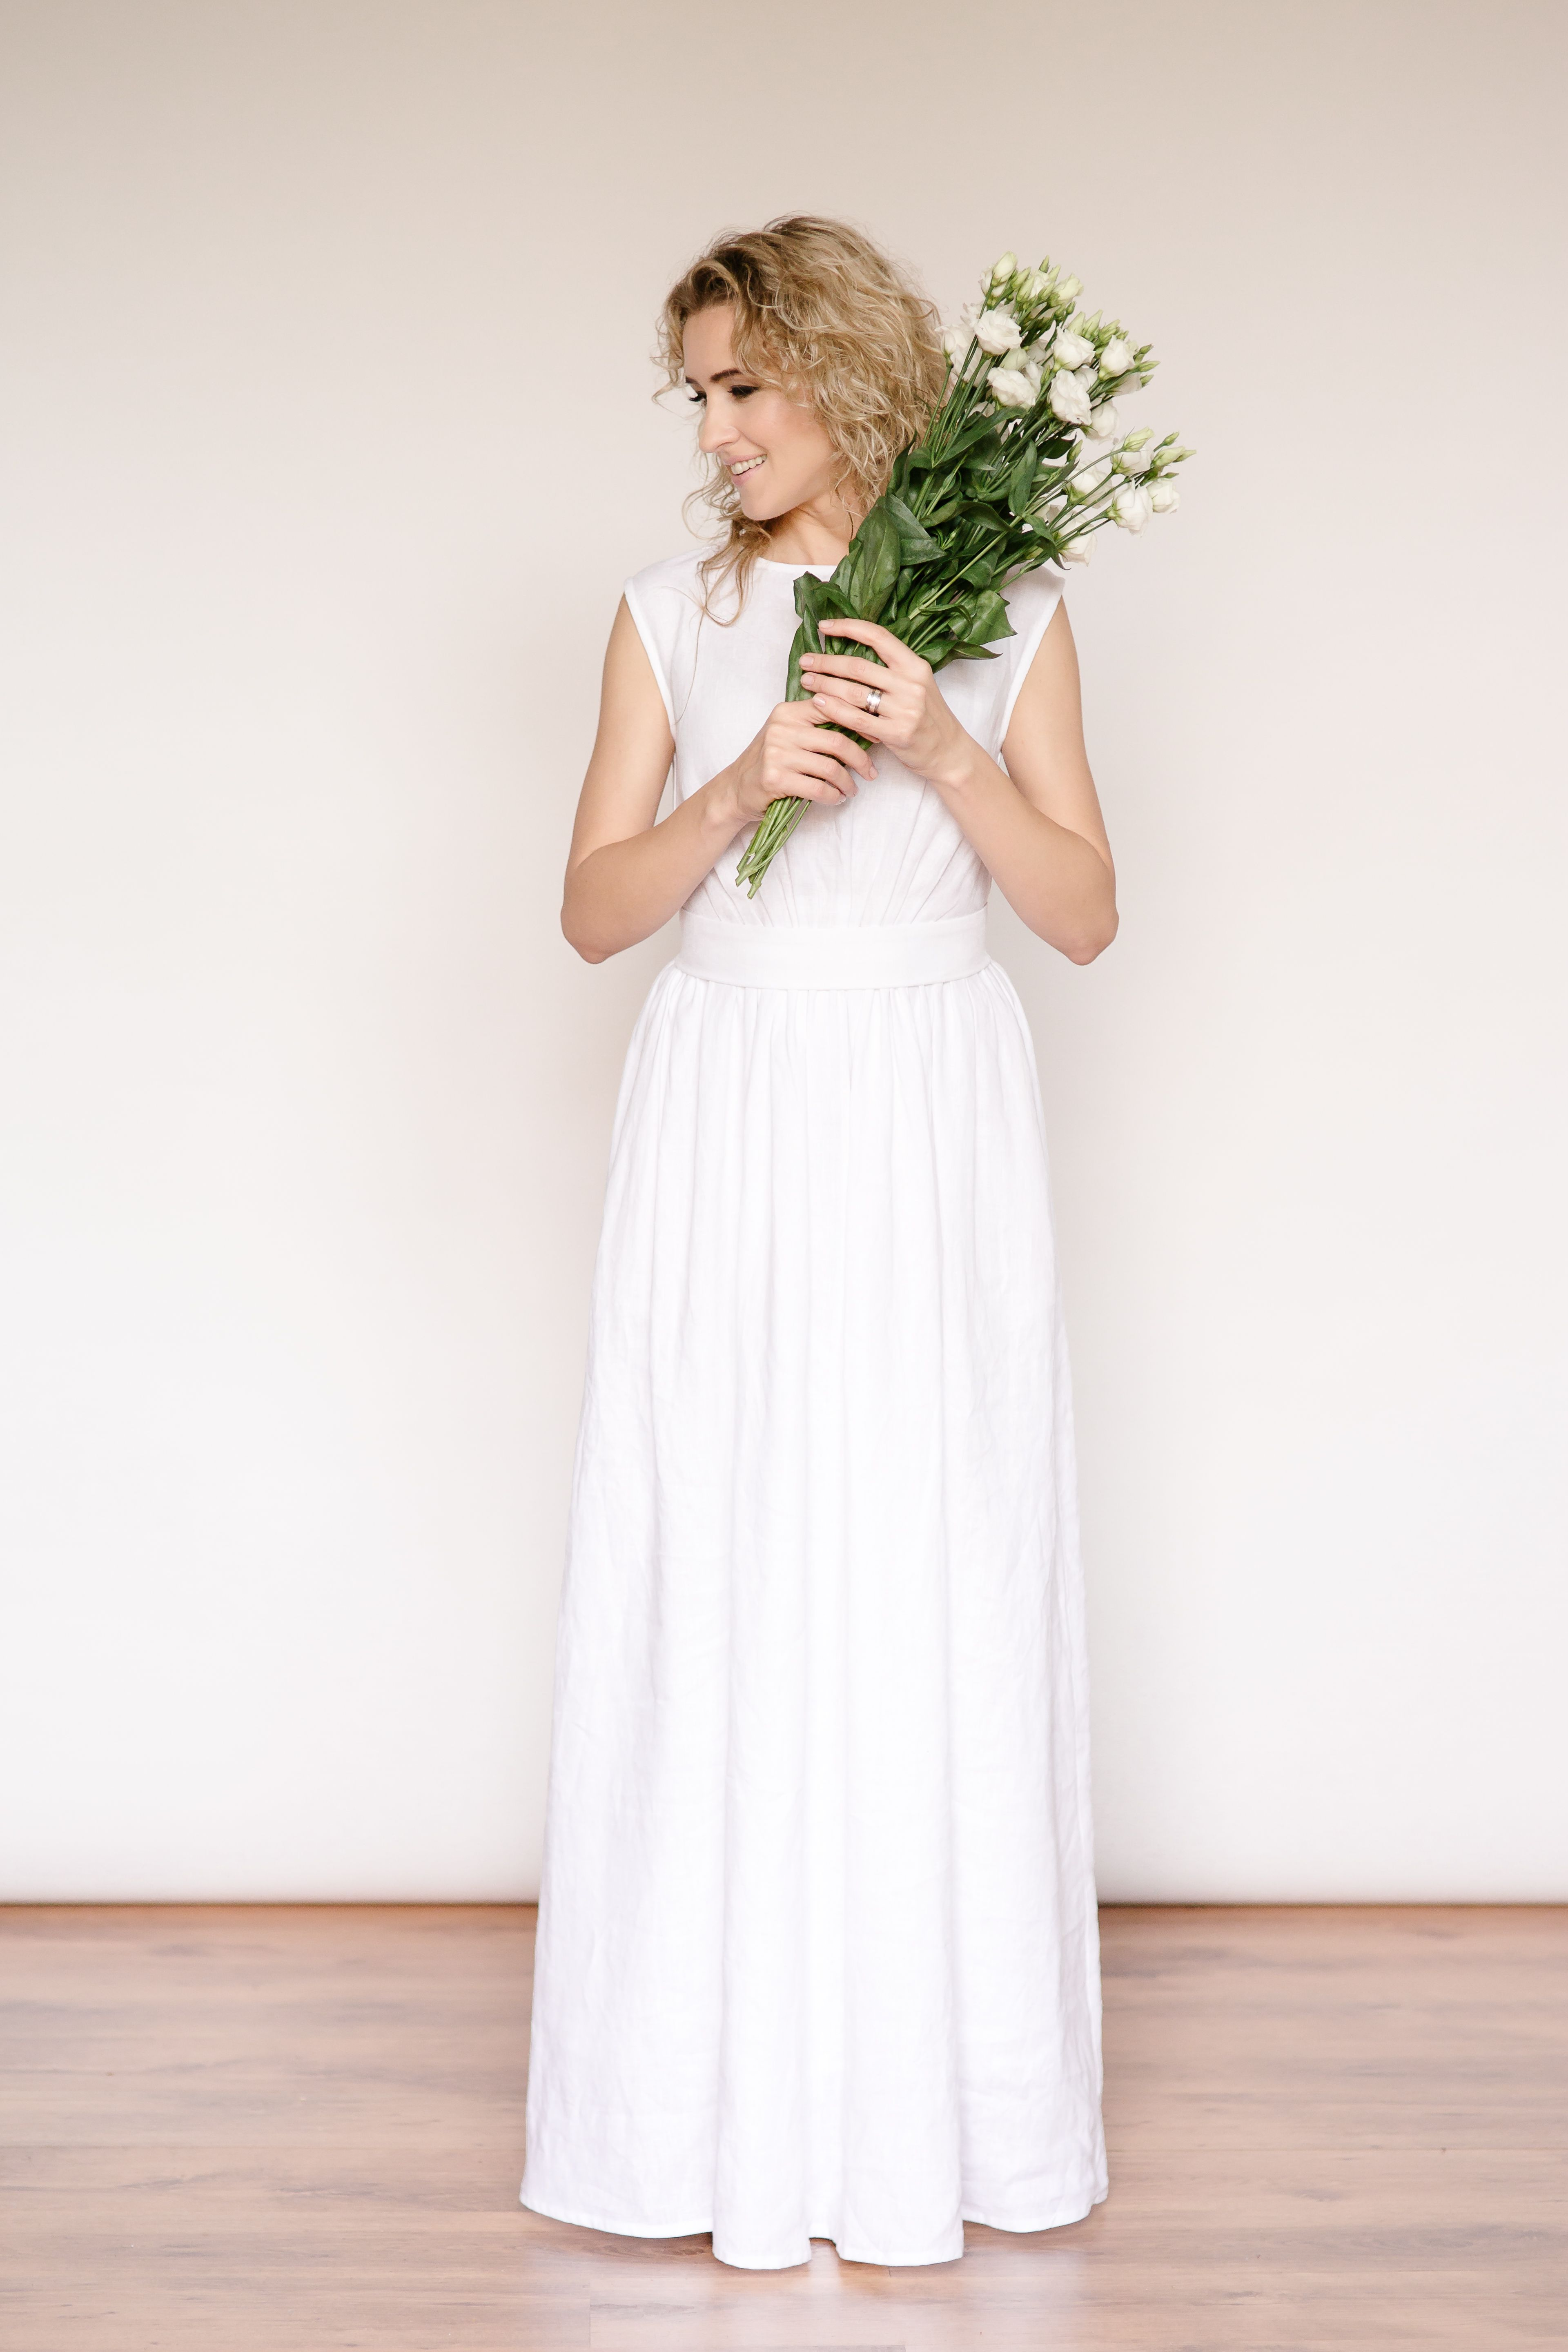 Linen greek style wedding dress. Tailor made by CozyBlue. Lithuania ...